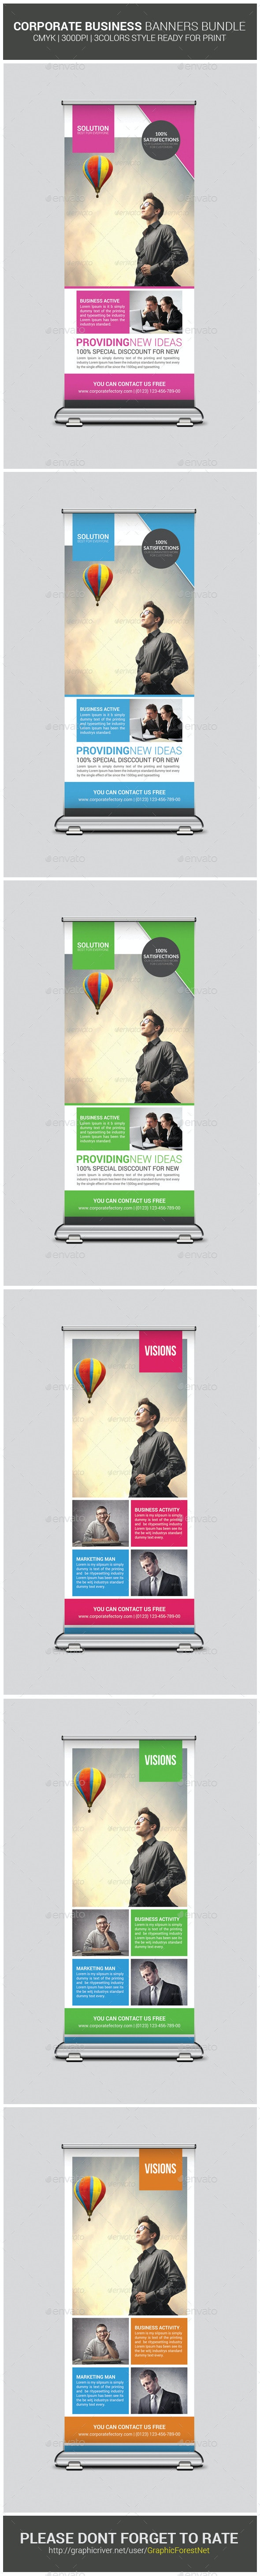 Business Rollup Banners Bundle - Signage Print Templates